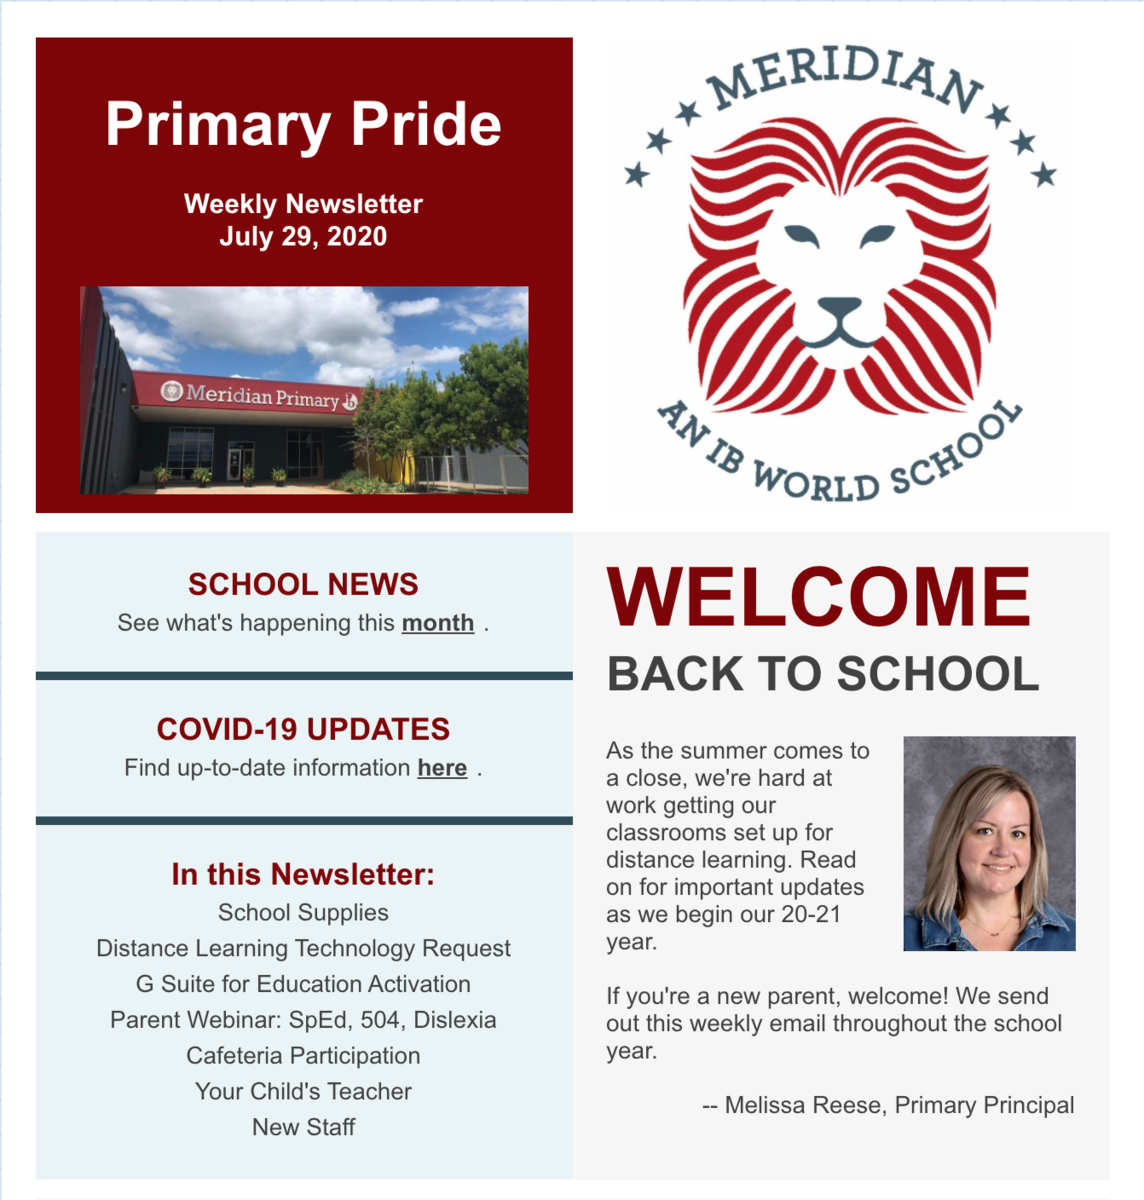 Primary Pride Newsletter